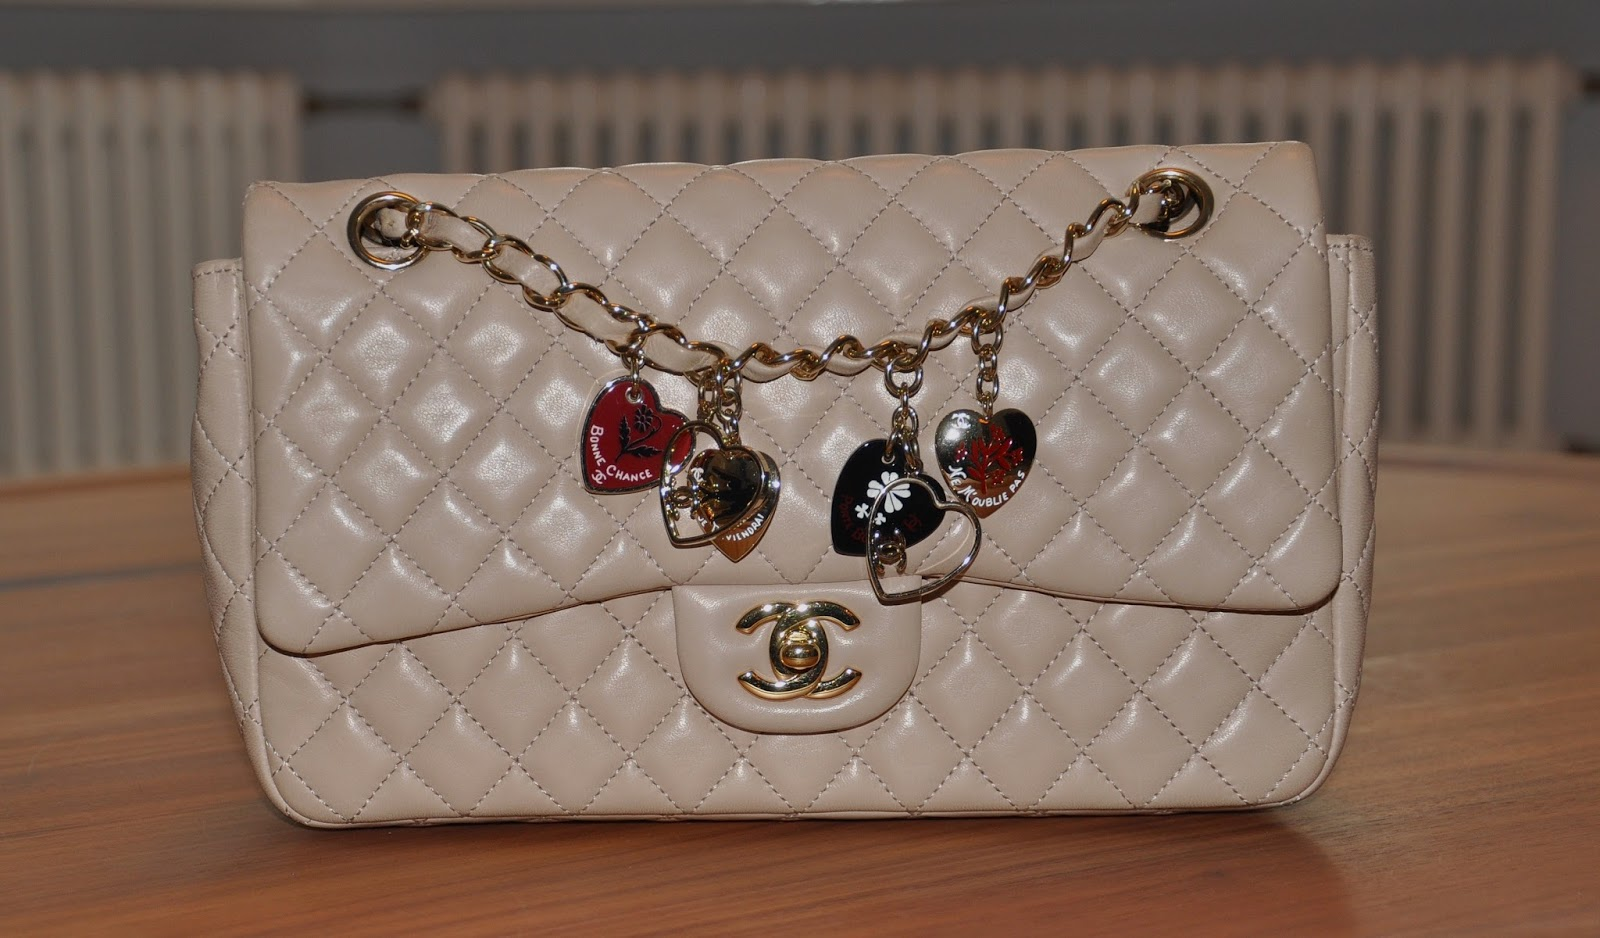 7720bef25c6c Today we will show you our Chanel Valentine bag. This is a Medium Classic Chanel  flap bag and is from the Valentine Collection 2010.